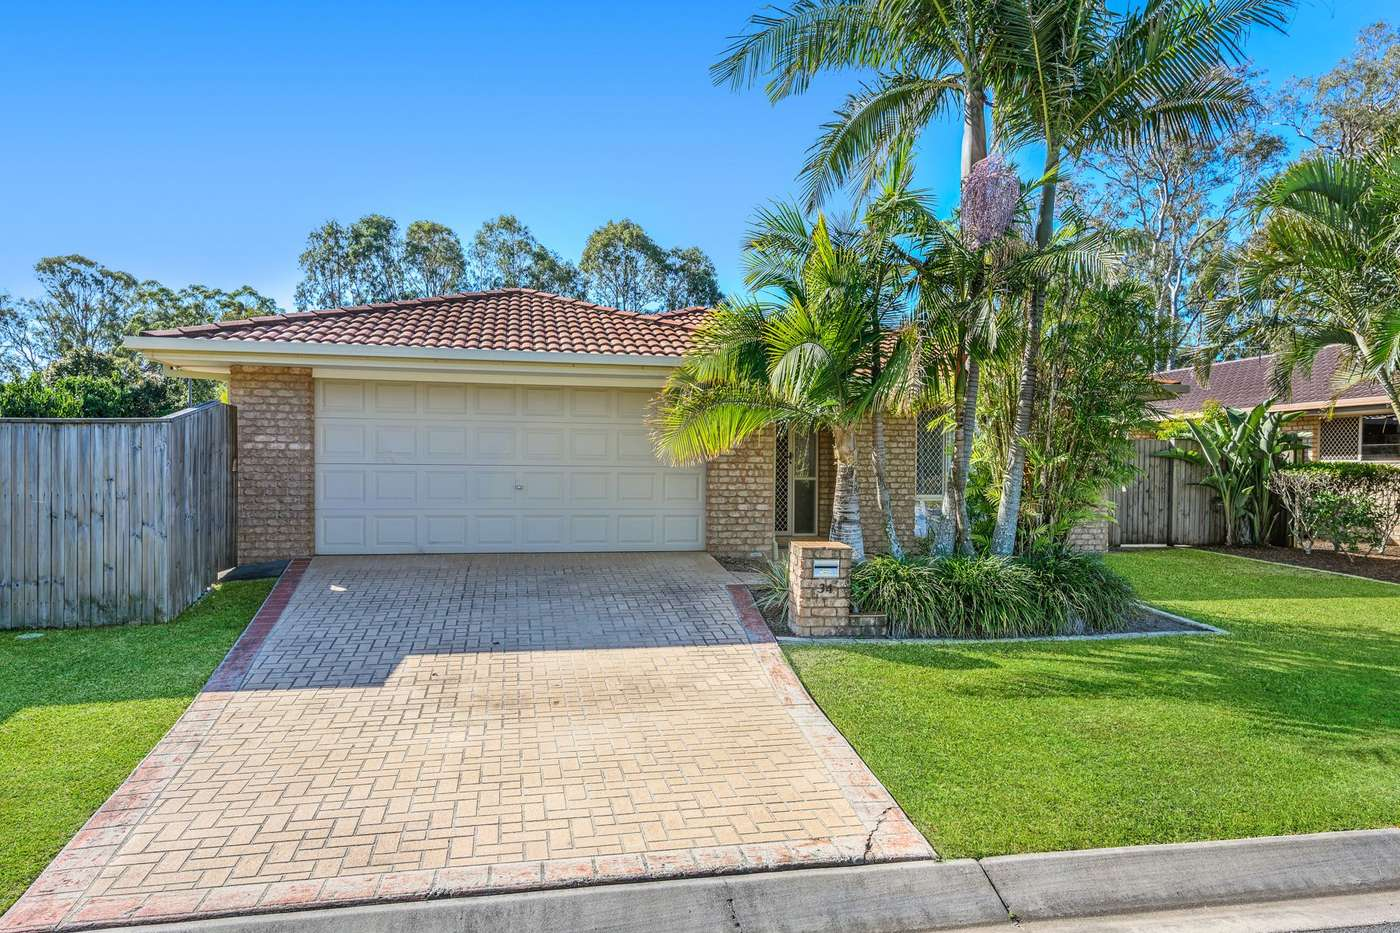 Main view of Homely house listing, 34 Groves Crescent, Boondall, QLD 4034